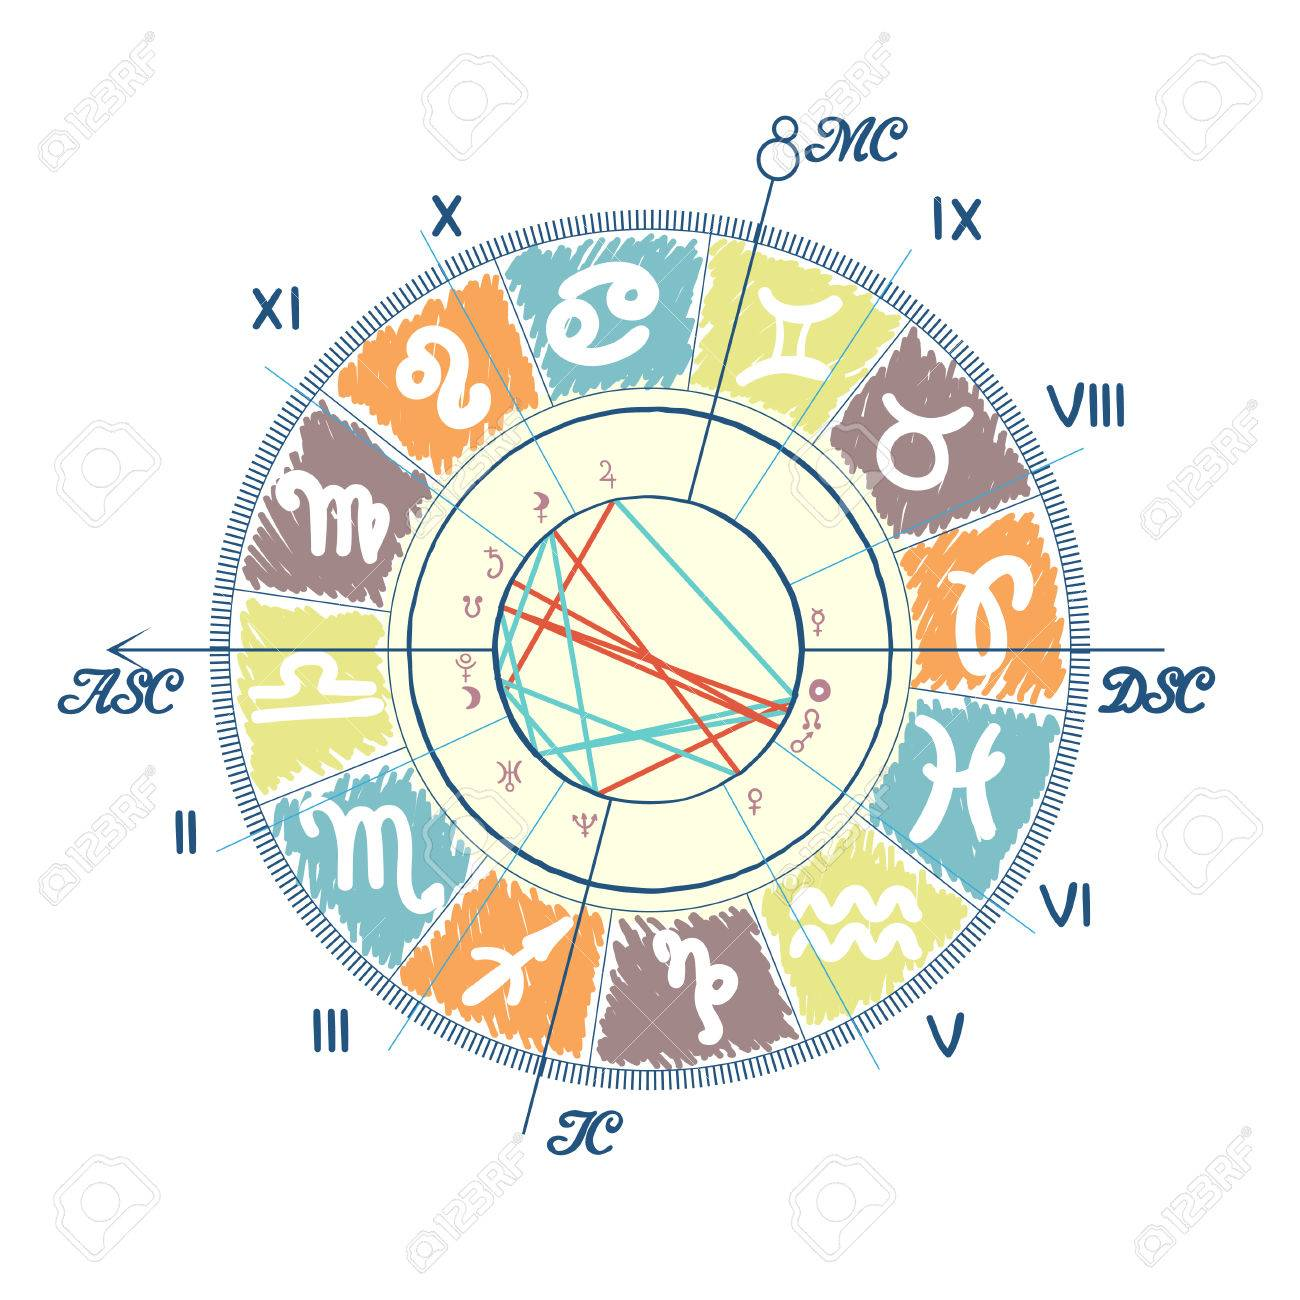 Free zodiac birth chart image collections free any chart examples free zodiac birth chart images free any chart examples vanessa hudgens natal chart gallery free any nvjuhfo Gallery